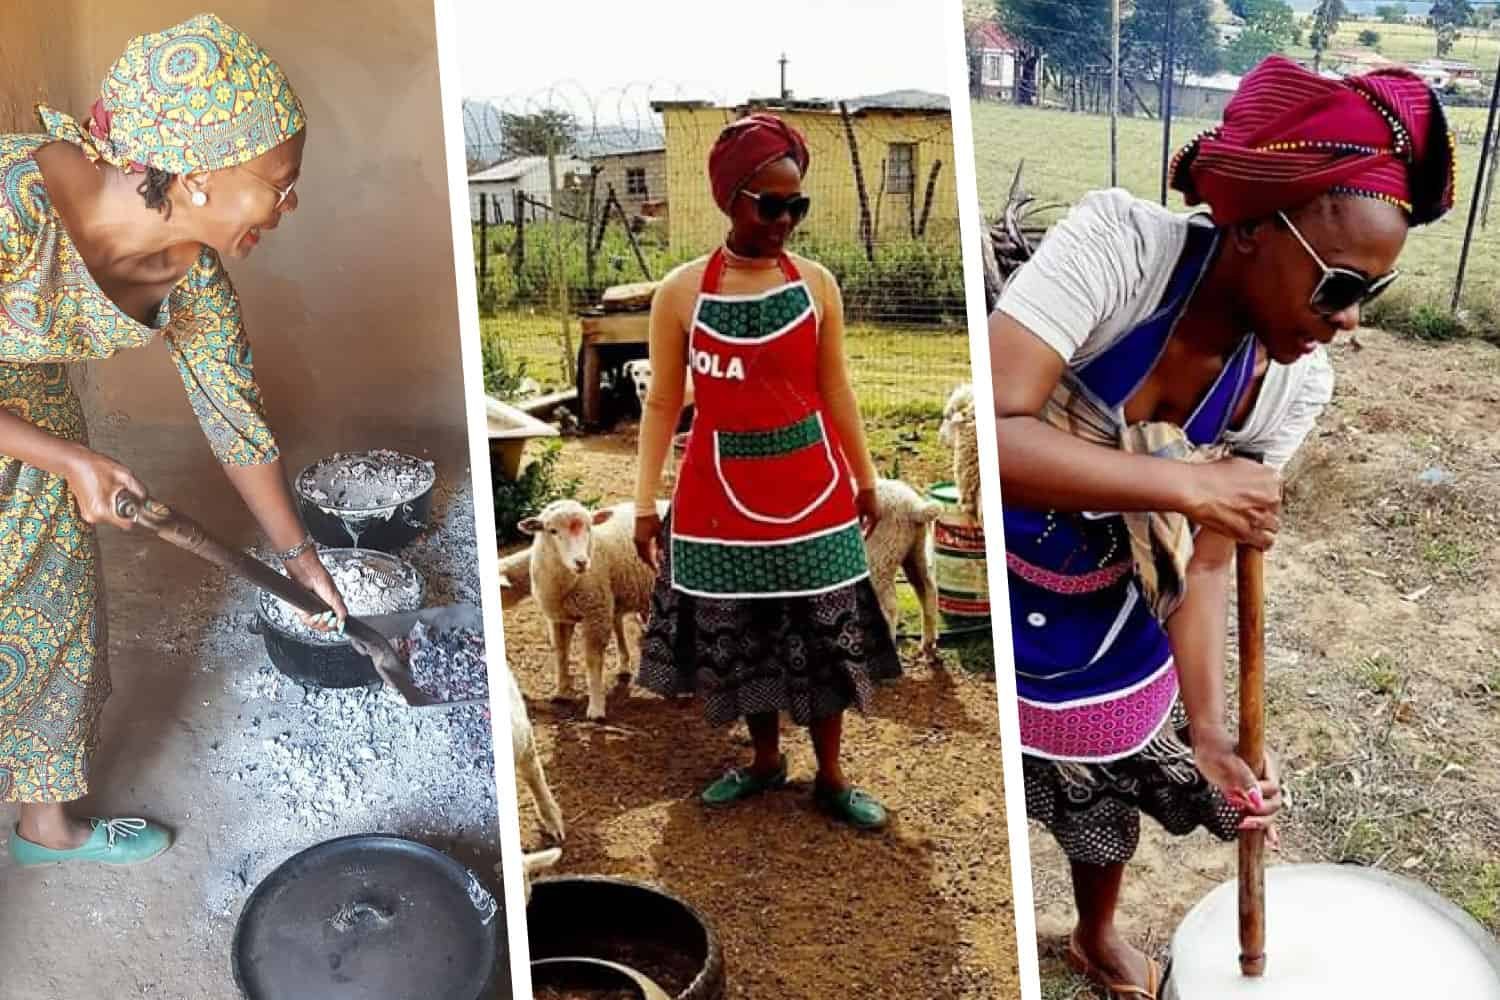 Mfazana the Village Chef is passionate about food - from start to finish. As a livestock farmer, she works intimately with the animals she eats, and says that it's all about love.